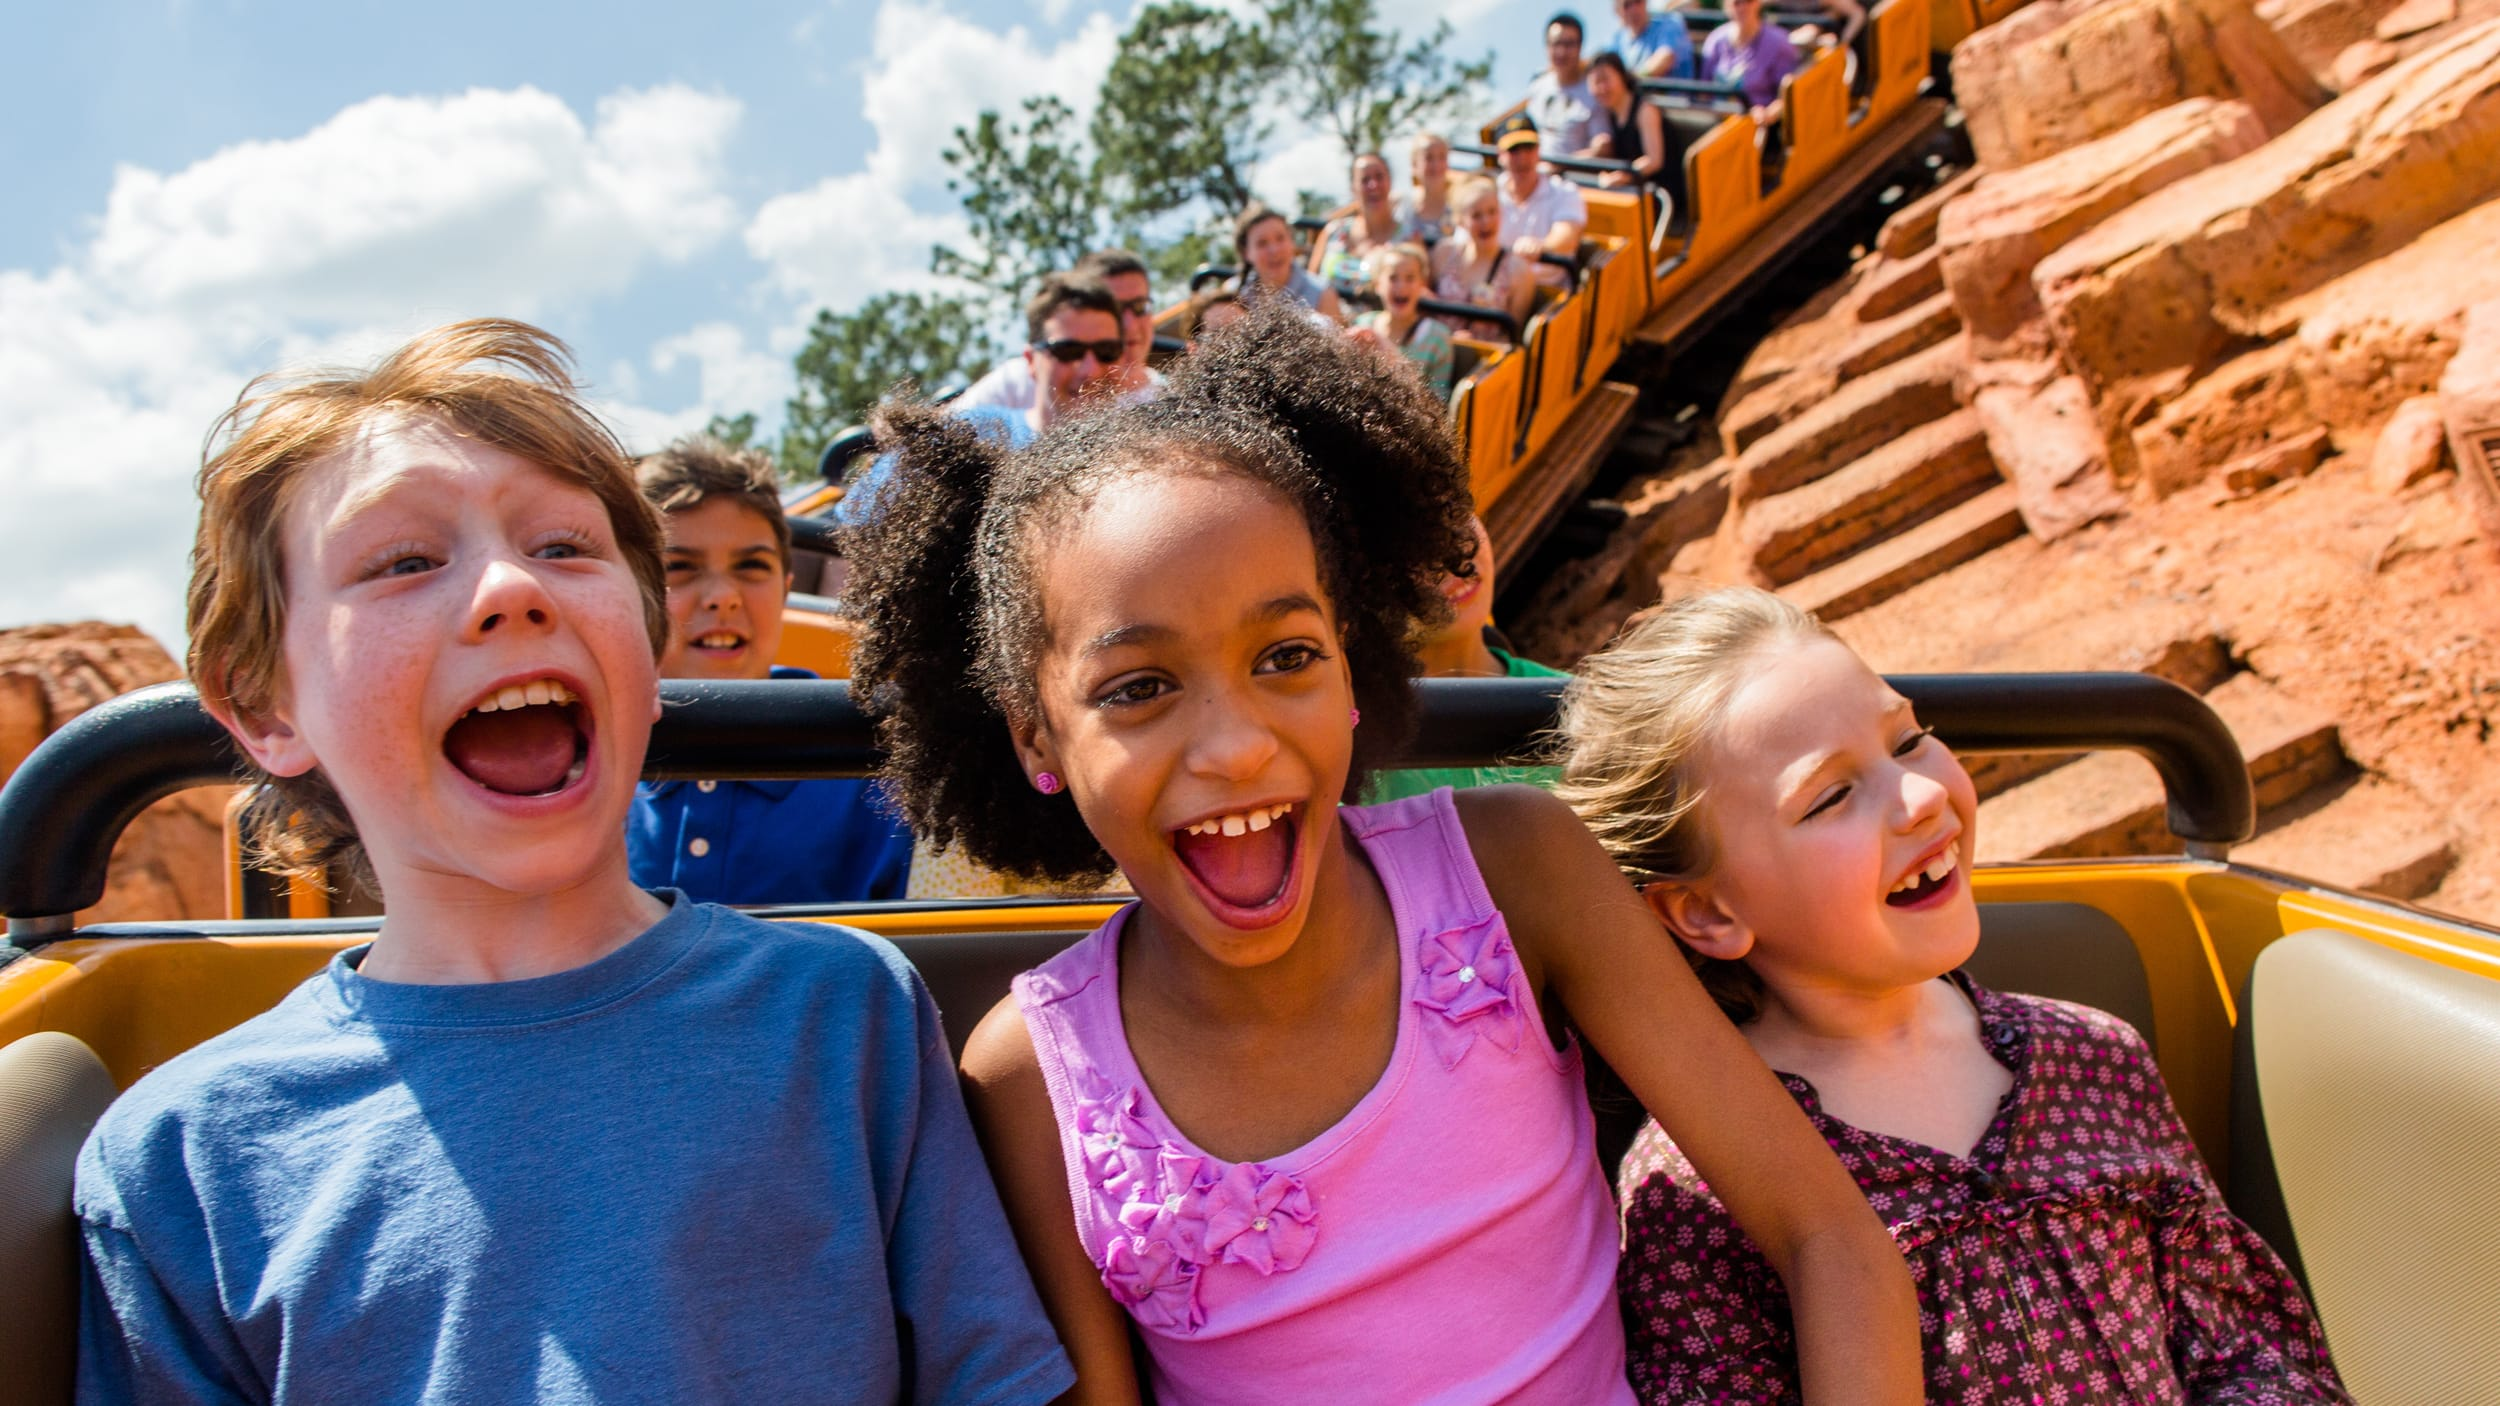 3 children riding in the front row of the coaster on Big Thunder Mountain Railroad